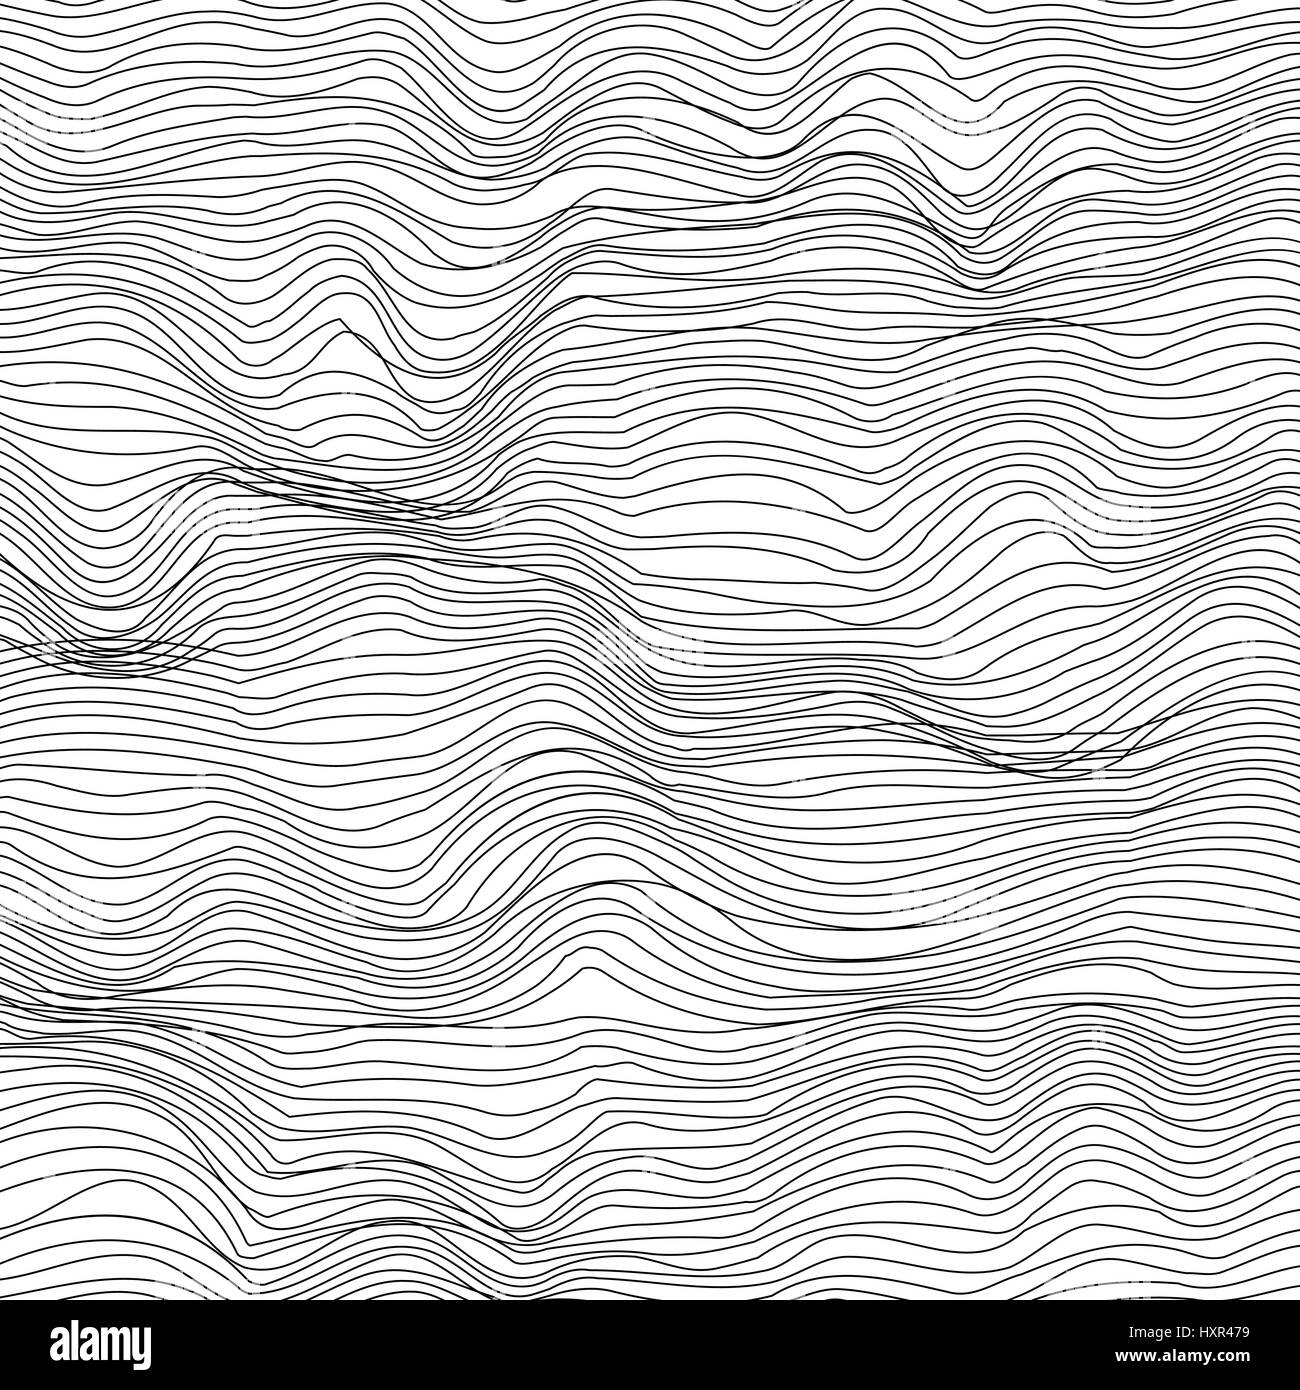 Abstract black and white background wavy geometric lines in modern 3d mesh texture style eps10 vector